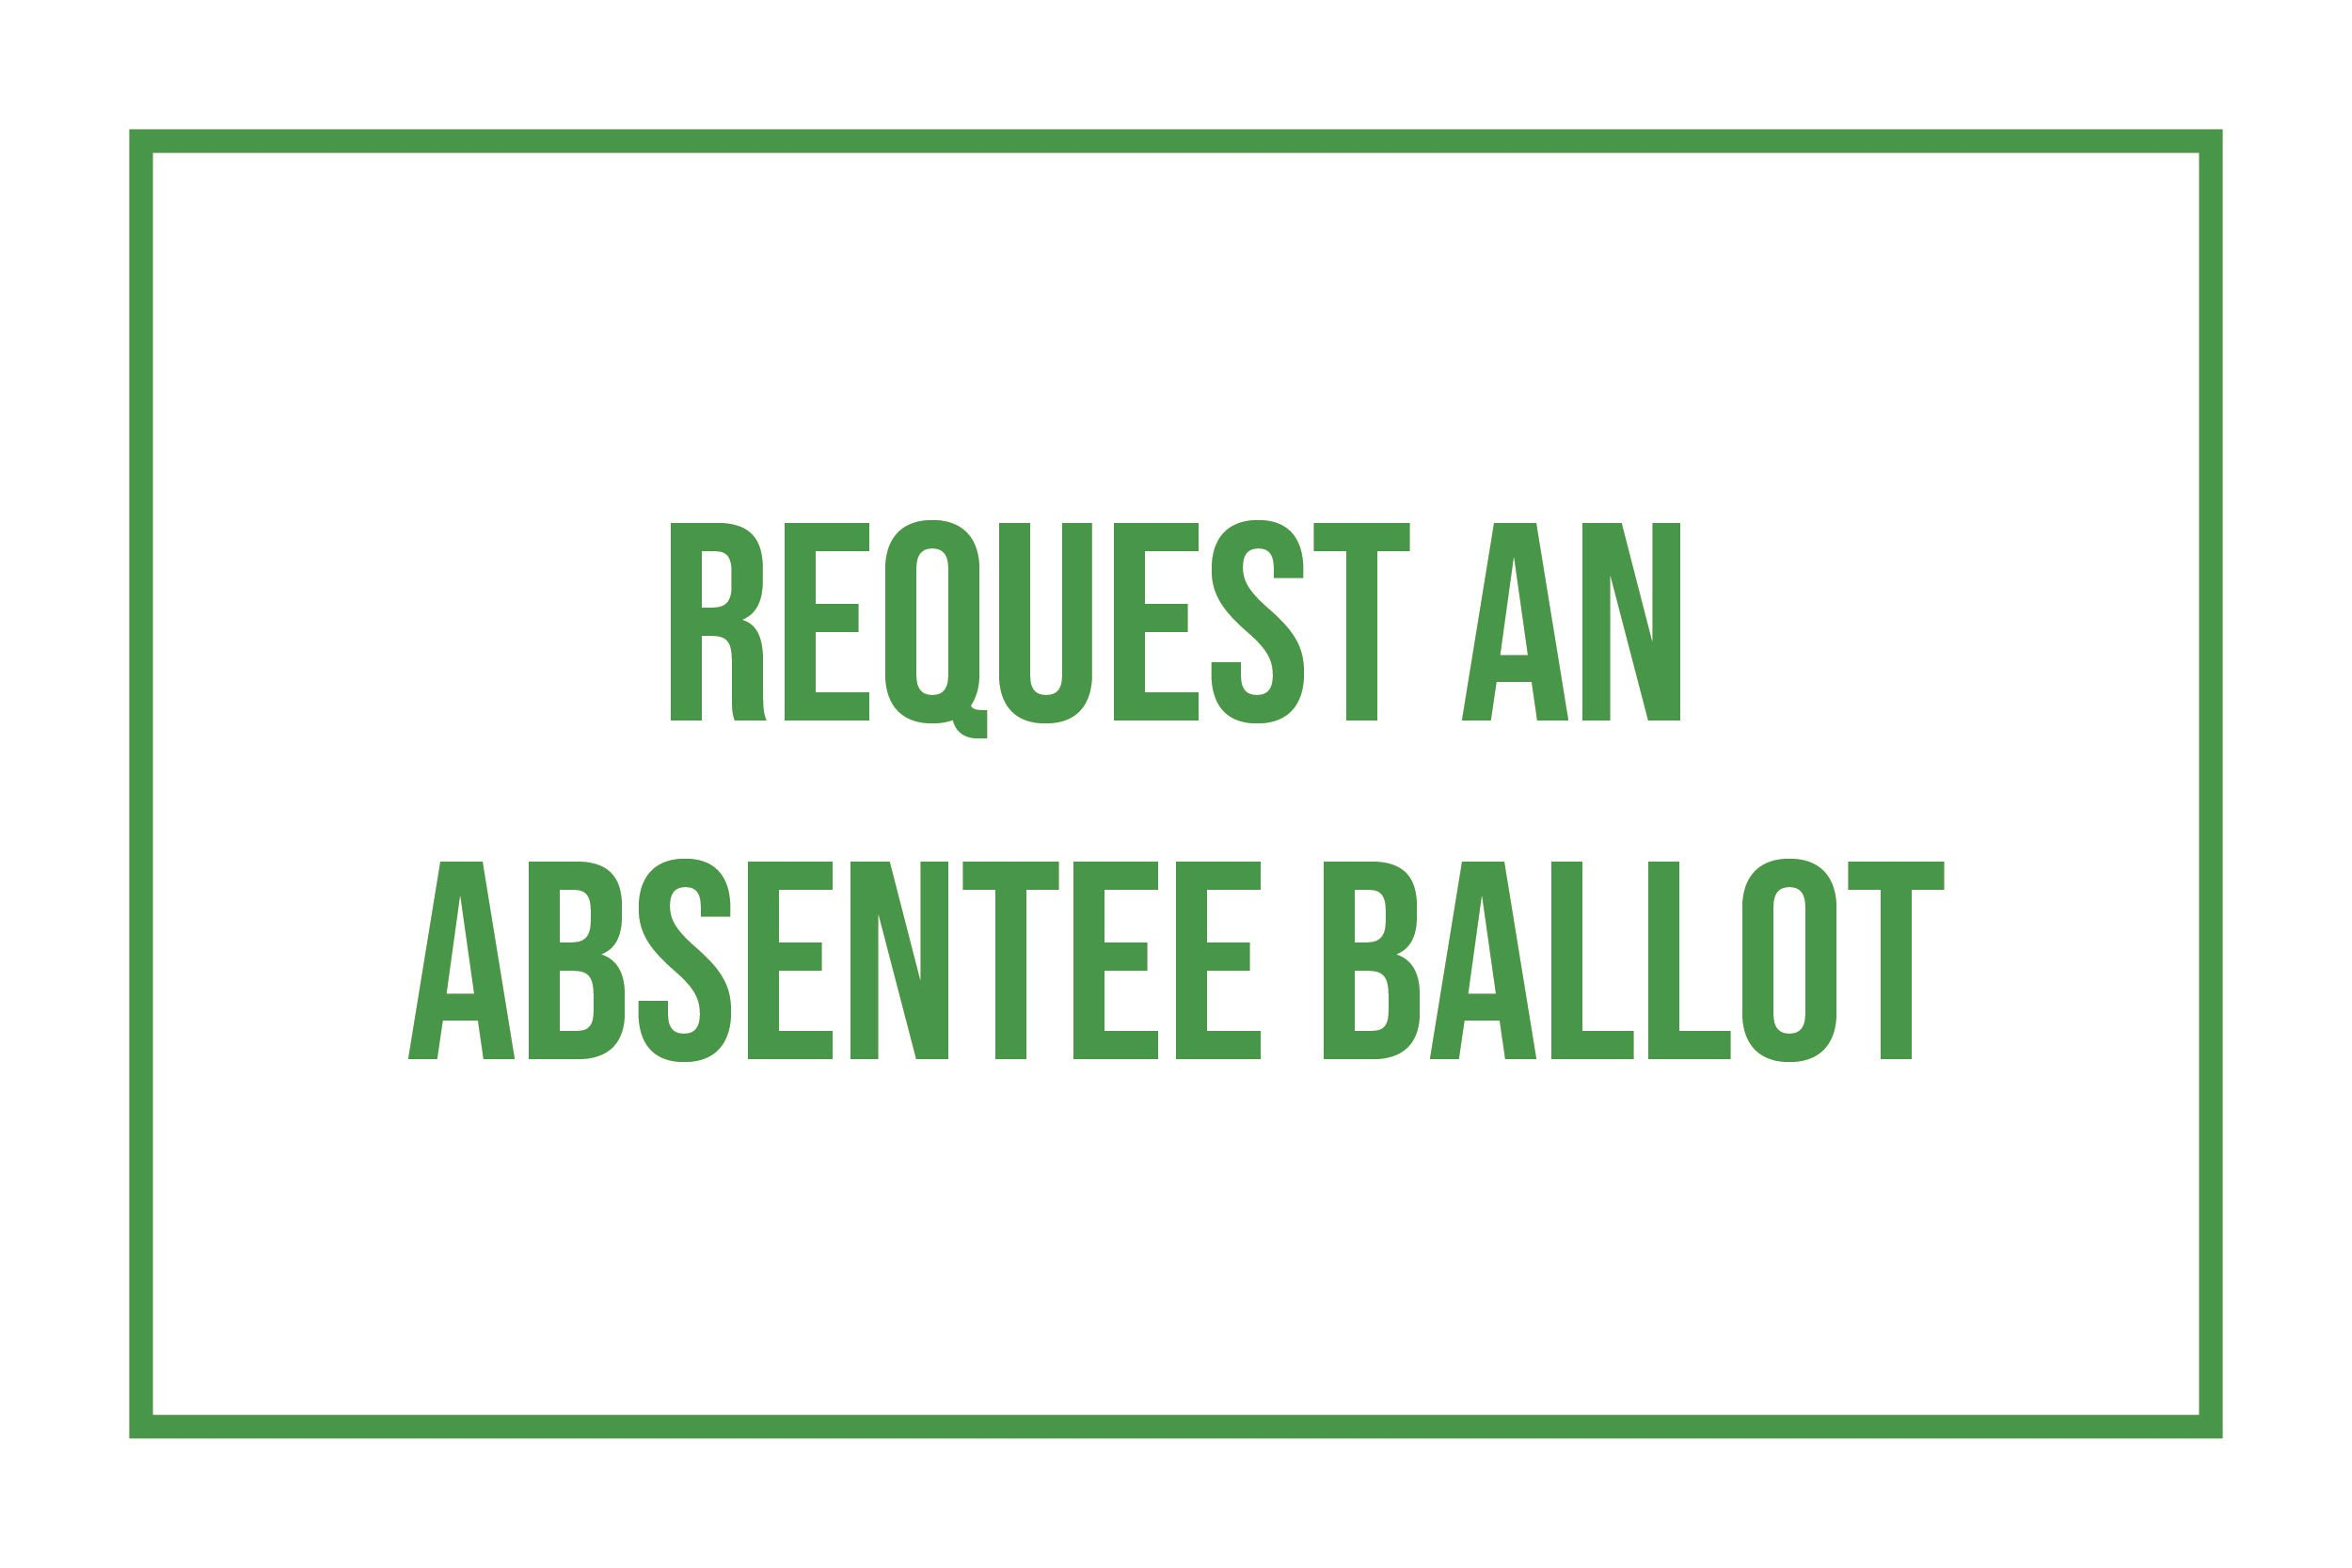 request_an_absentee_ballot_vote_600px